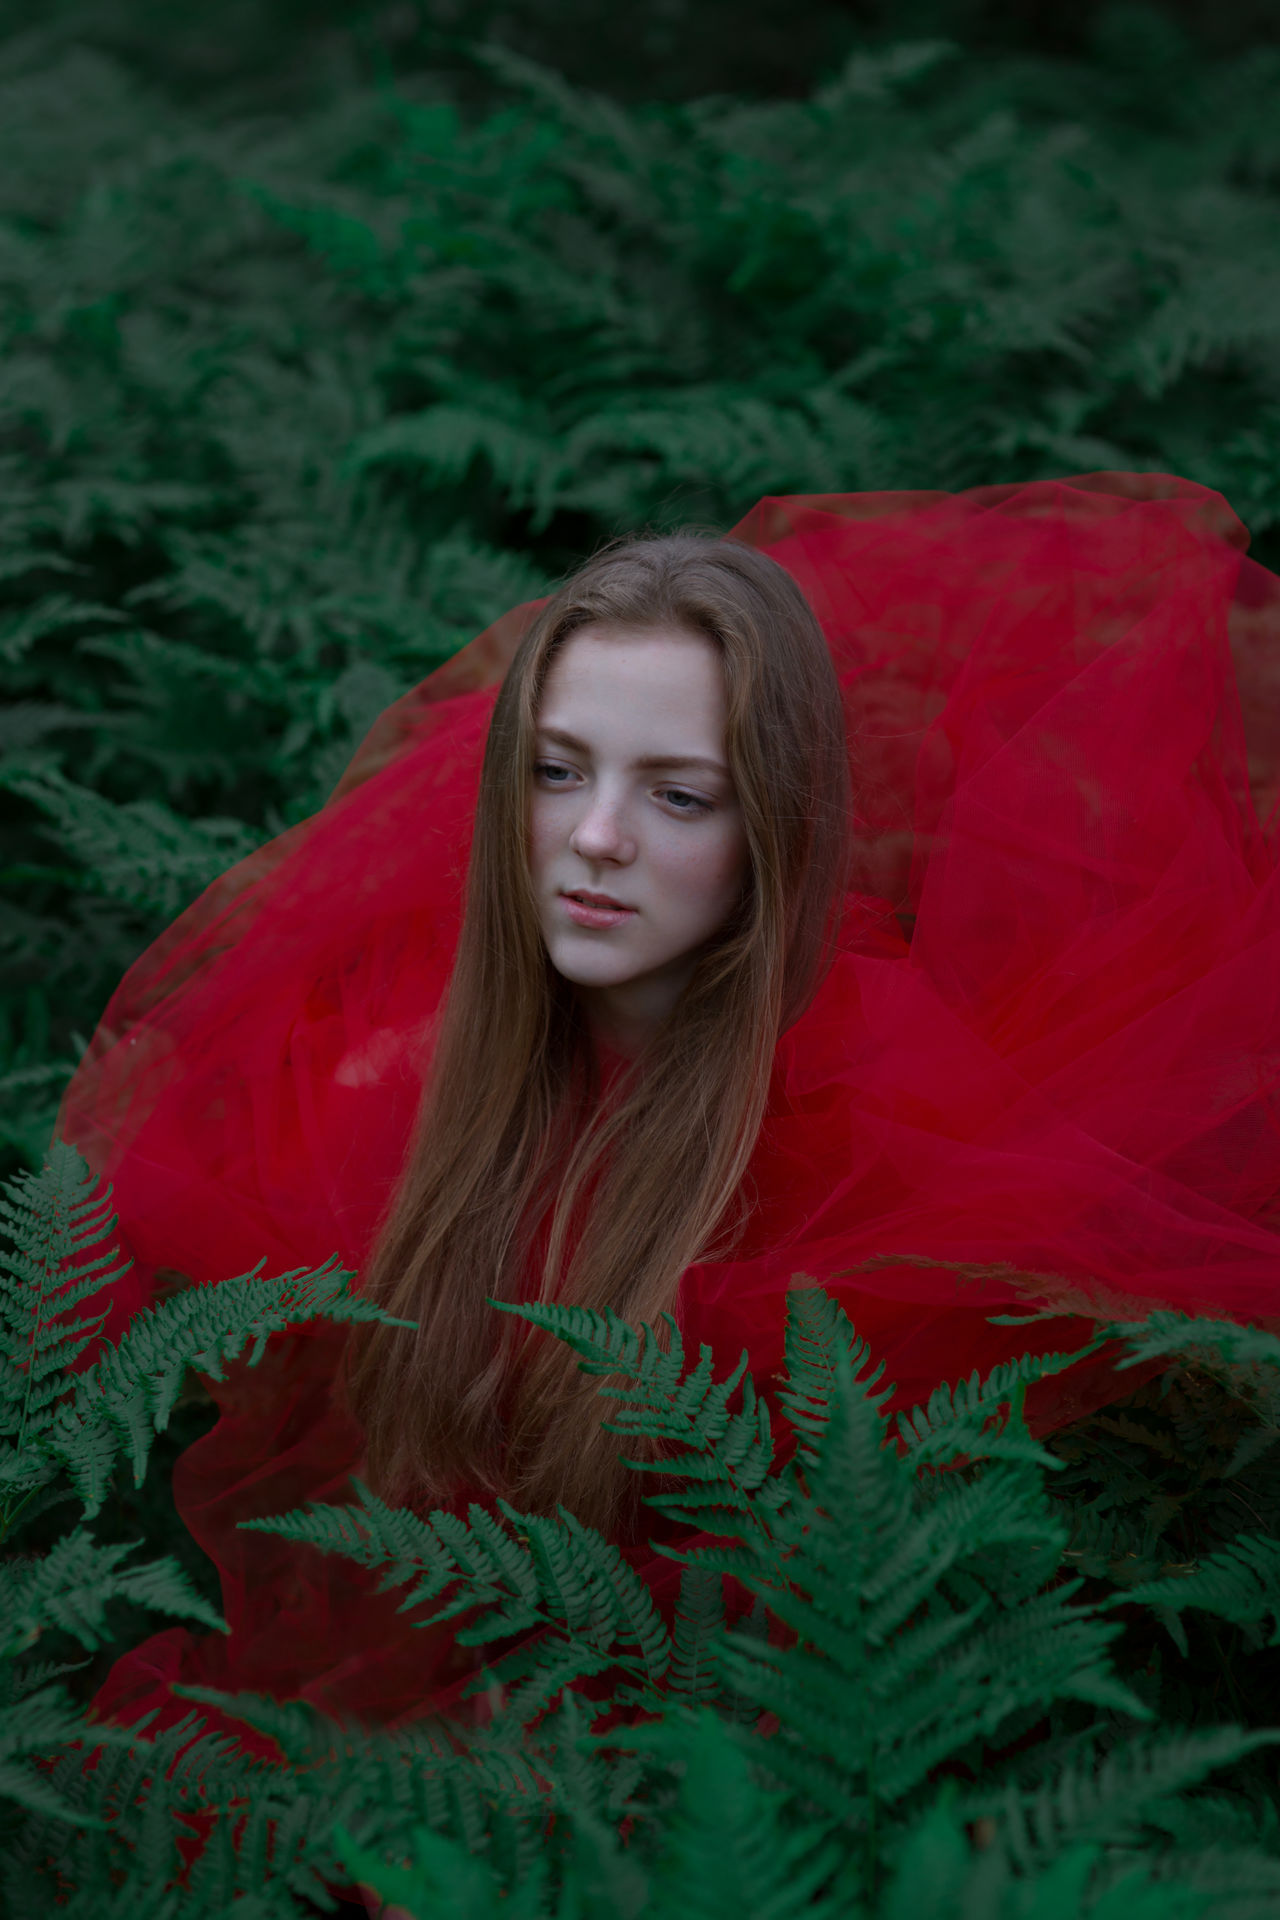 Adult Beautiful Woman Close-up Day Fern Forest Long Hair Natural Light Portrait Nature One Person Outdoors People Portrait Of A Woman Real People Red Witch Young Adult Young Women